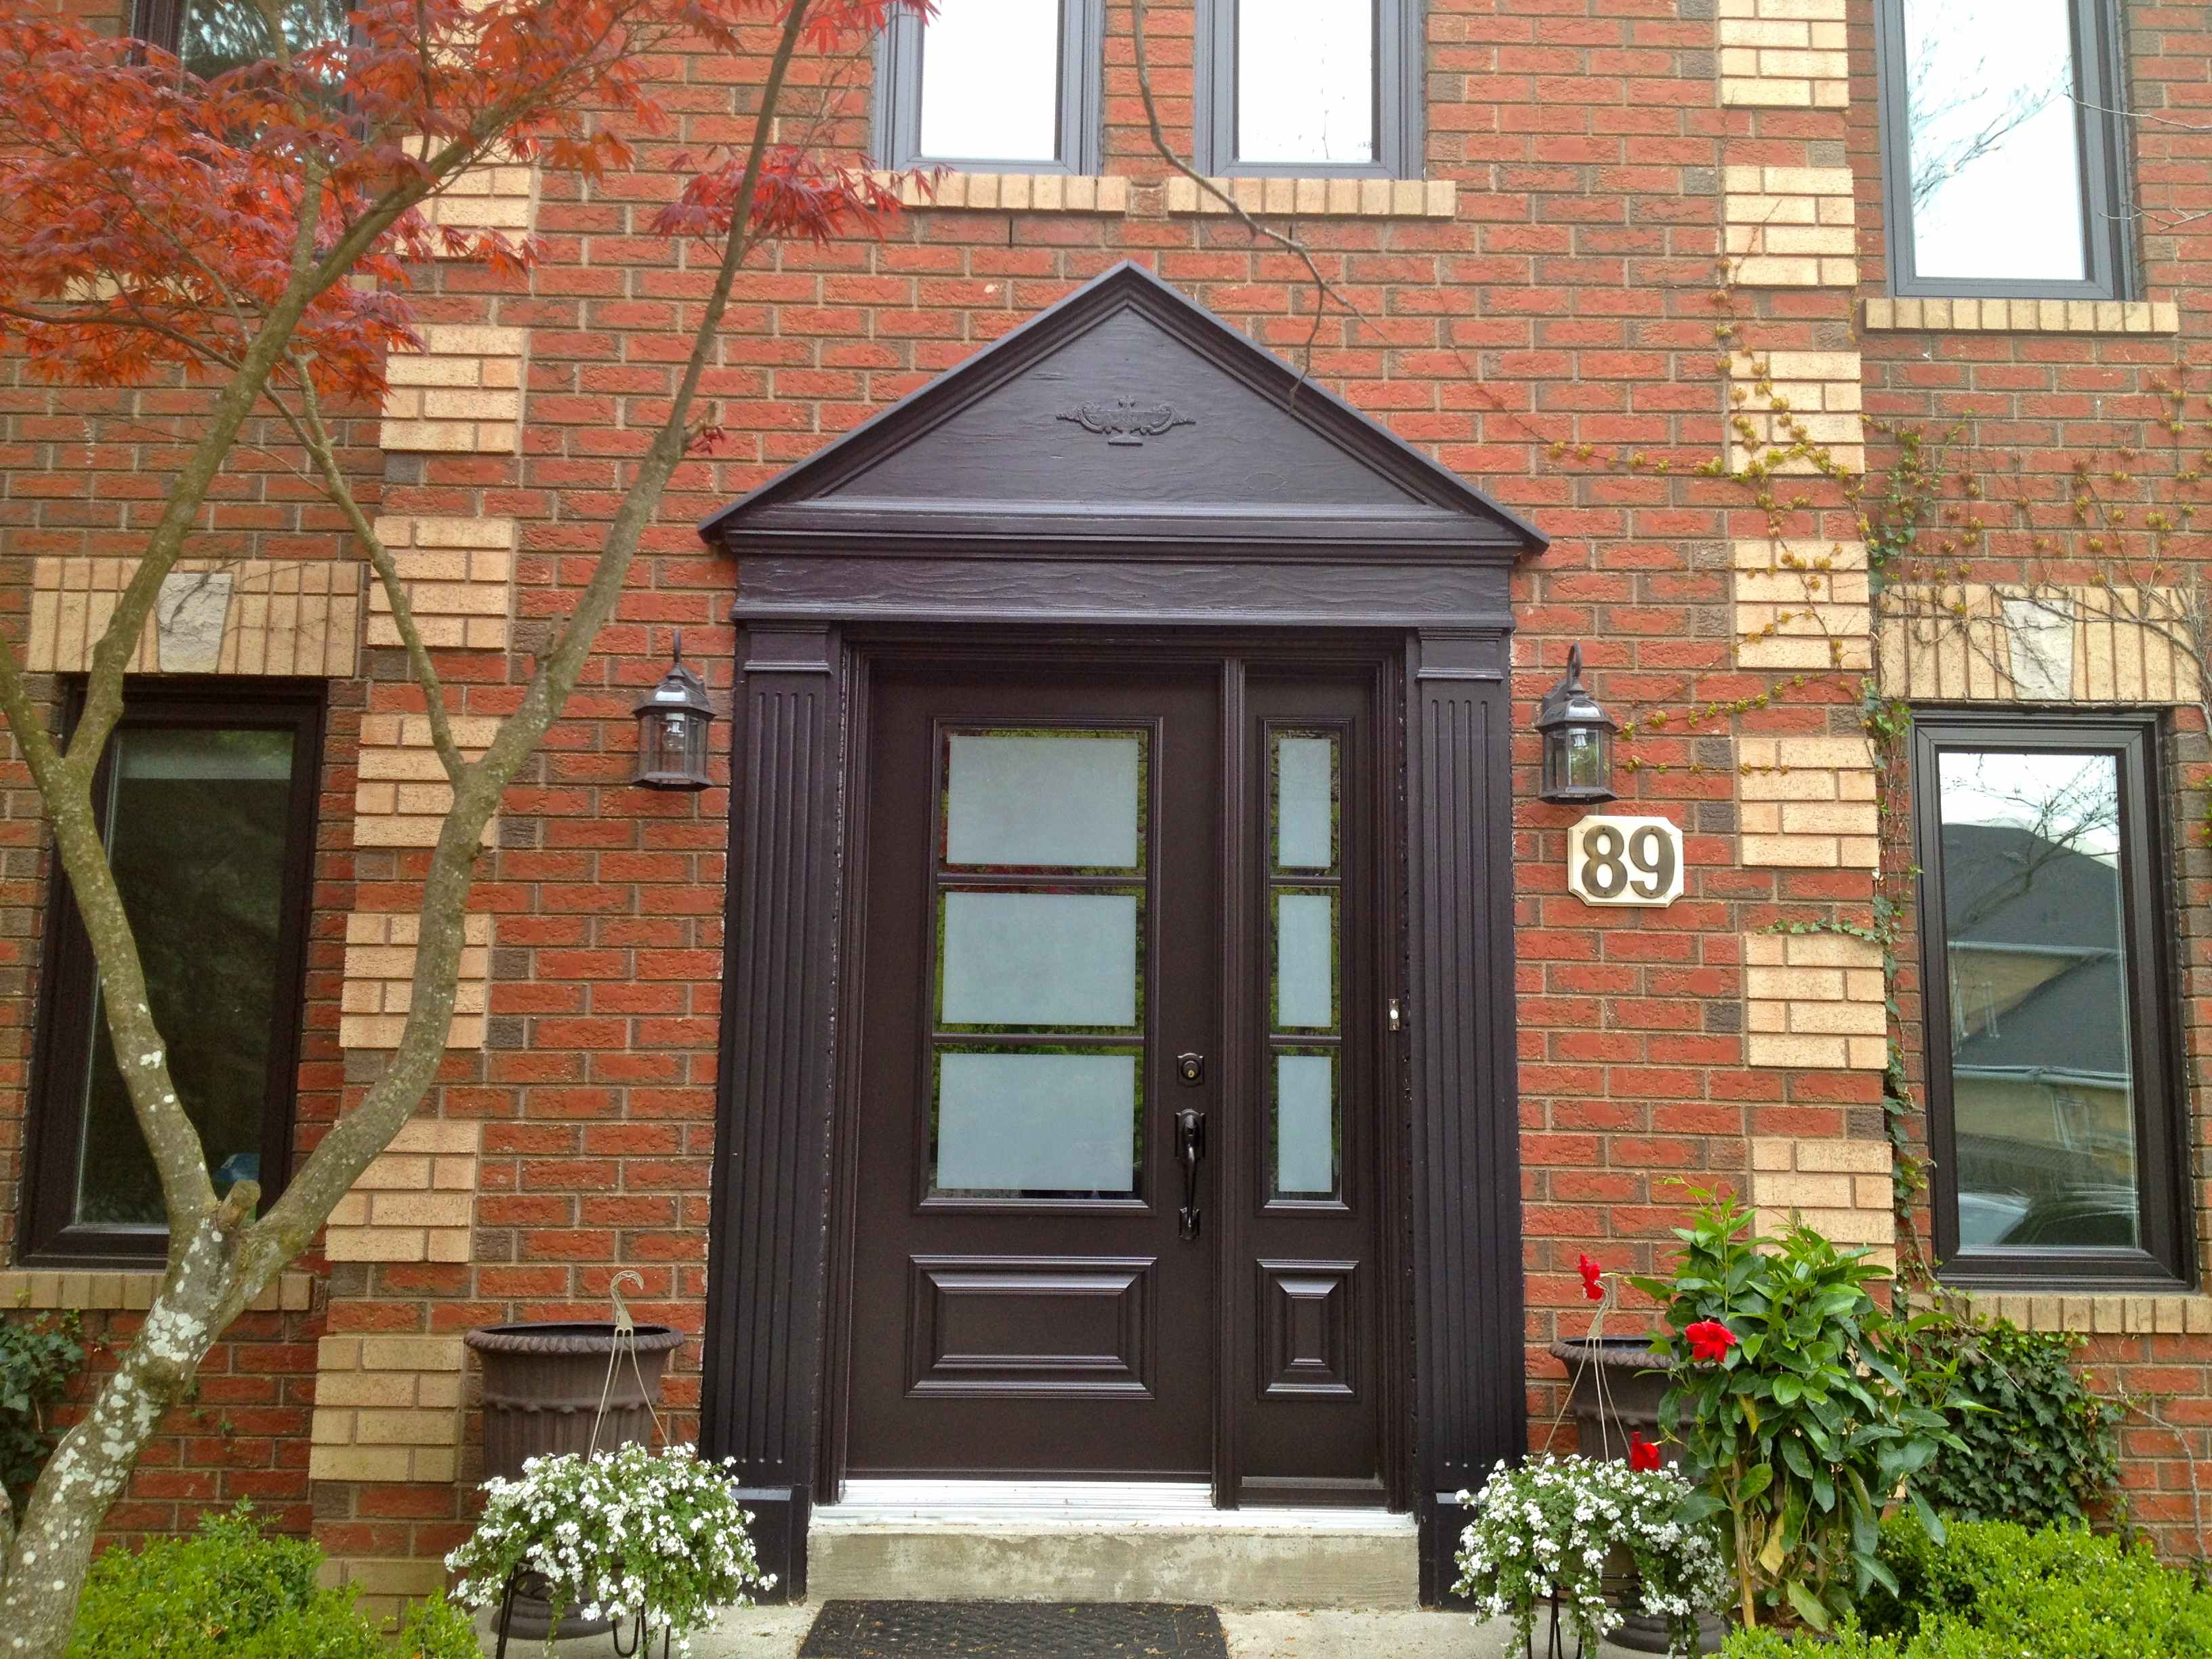 Exterior doors for sale by toronto doors and windows company for Exterior windows for sale